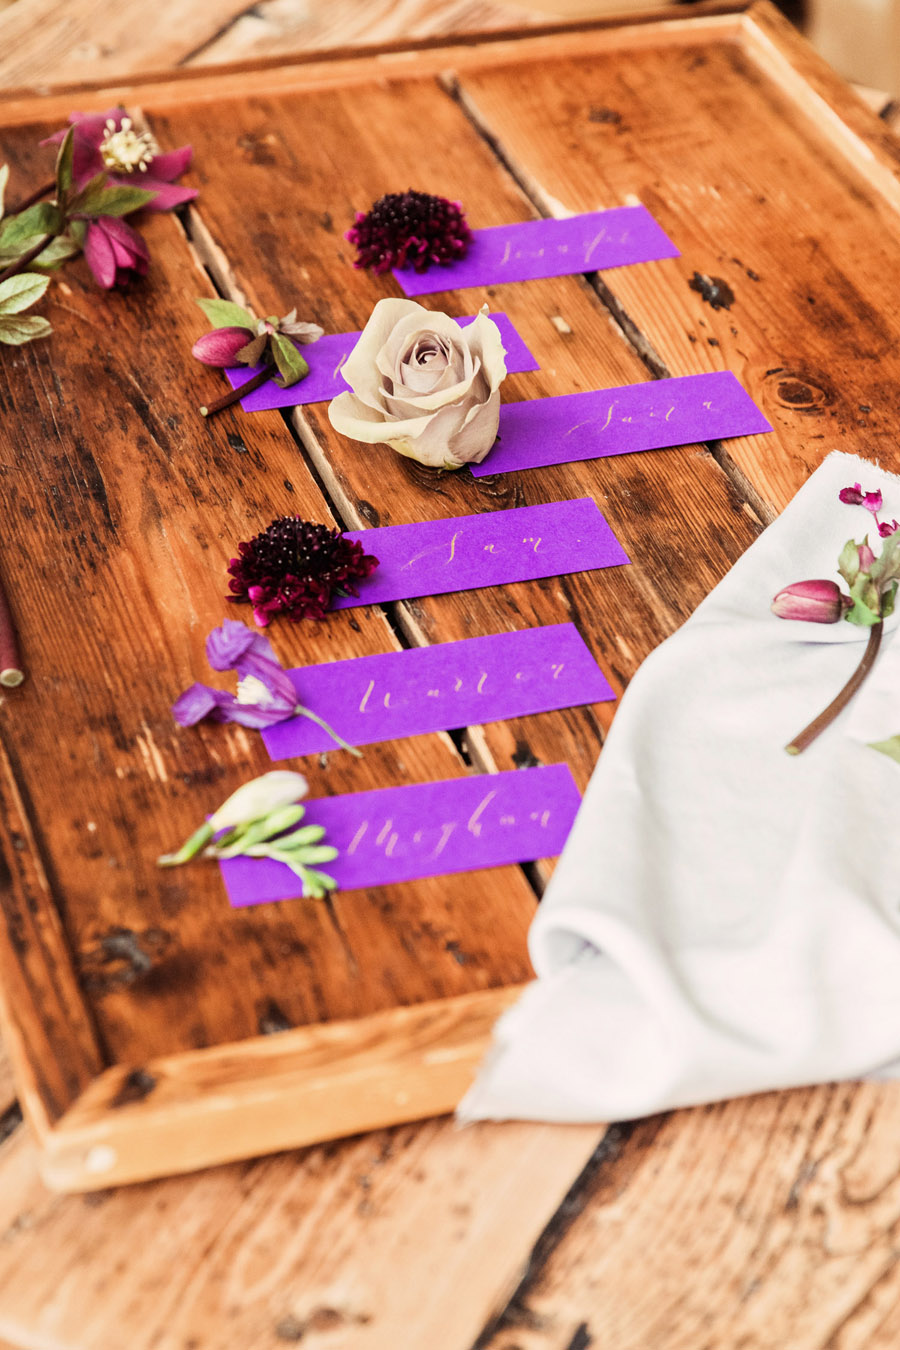 Calligraphy wedding service for place names and more - written by By Moon and Tide Calligraphy - image credit Camilla Lucinda (4)